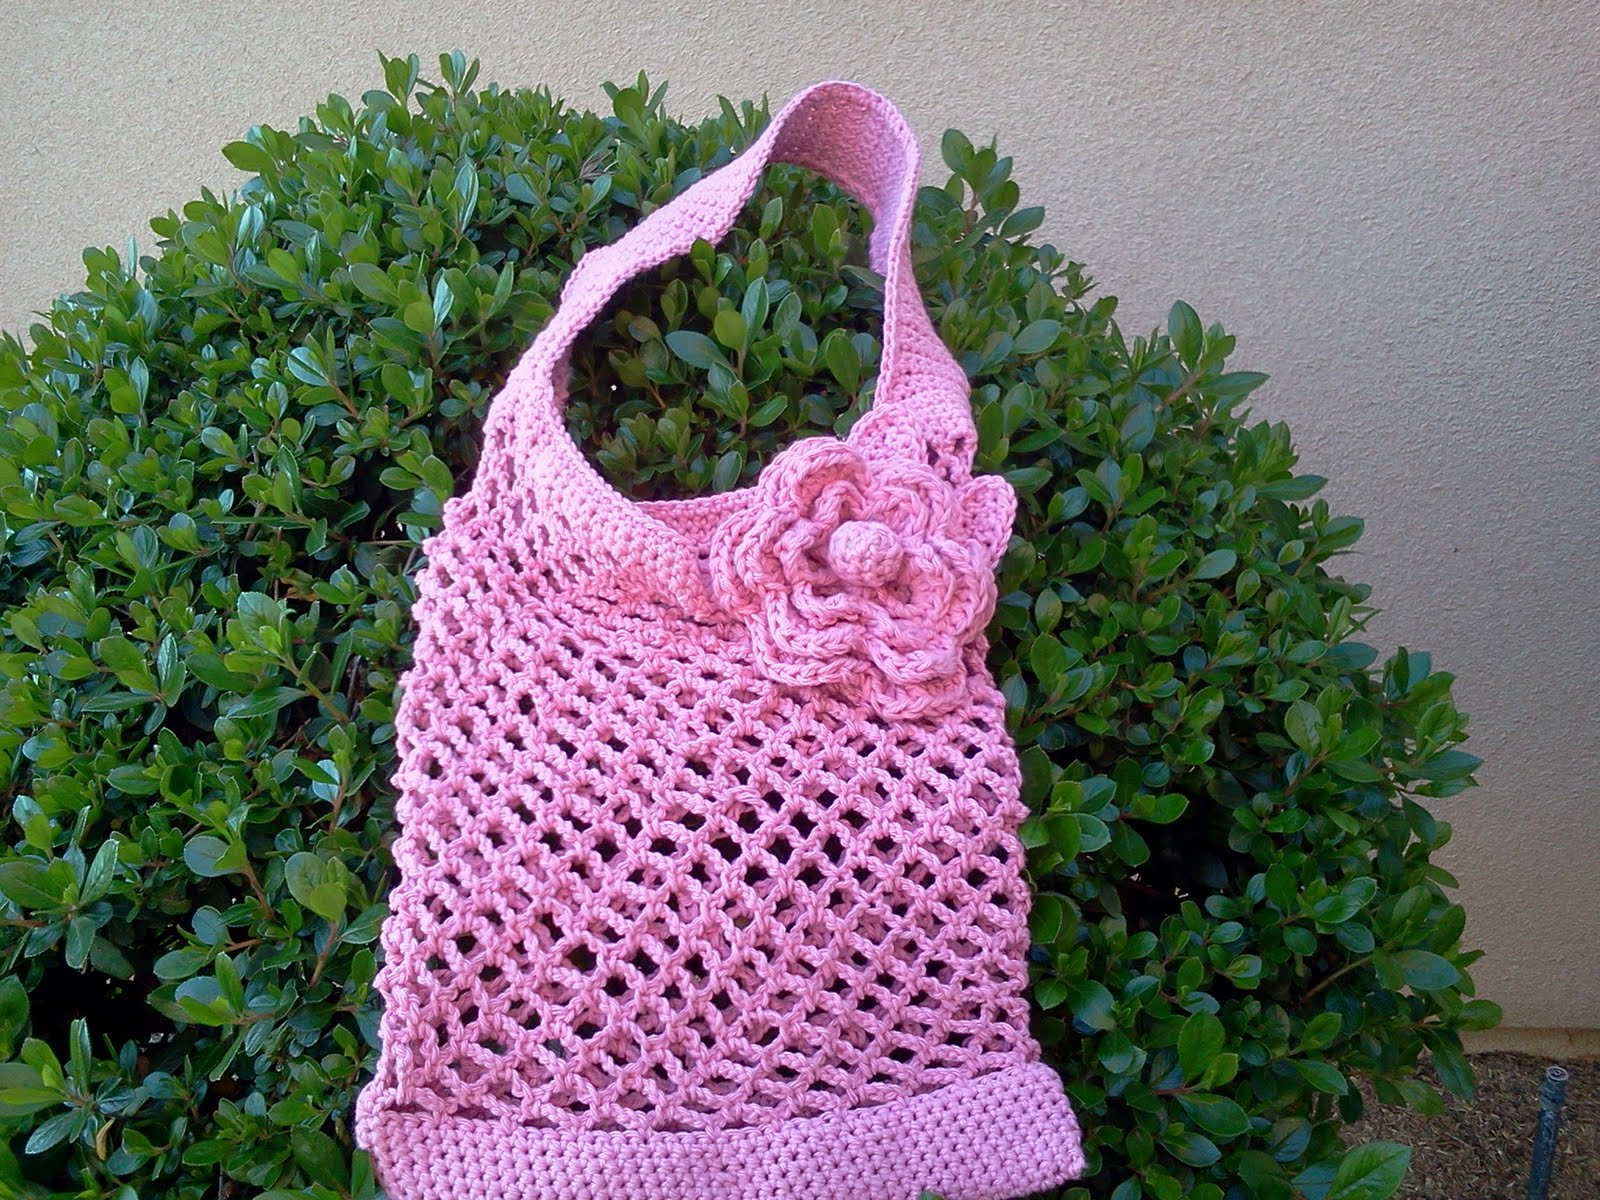 Free Crochet Patterns For Grocery Bags : Sincerely, Ree: Crochet Mesh Shopping Bag #2